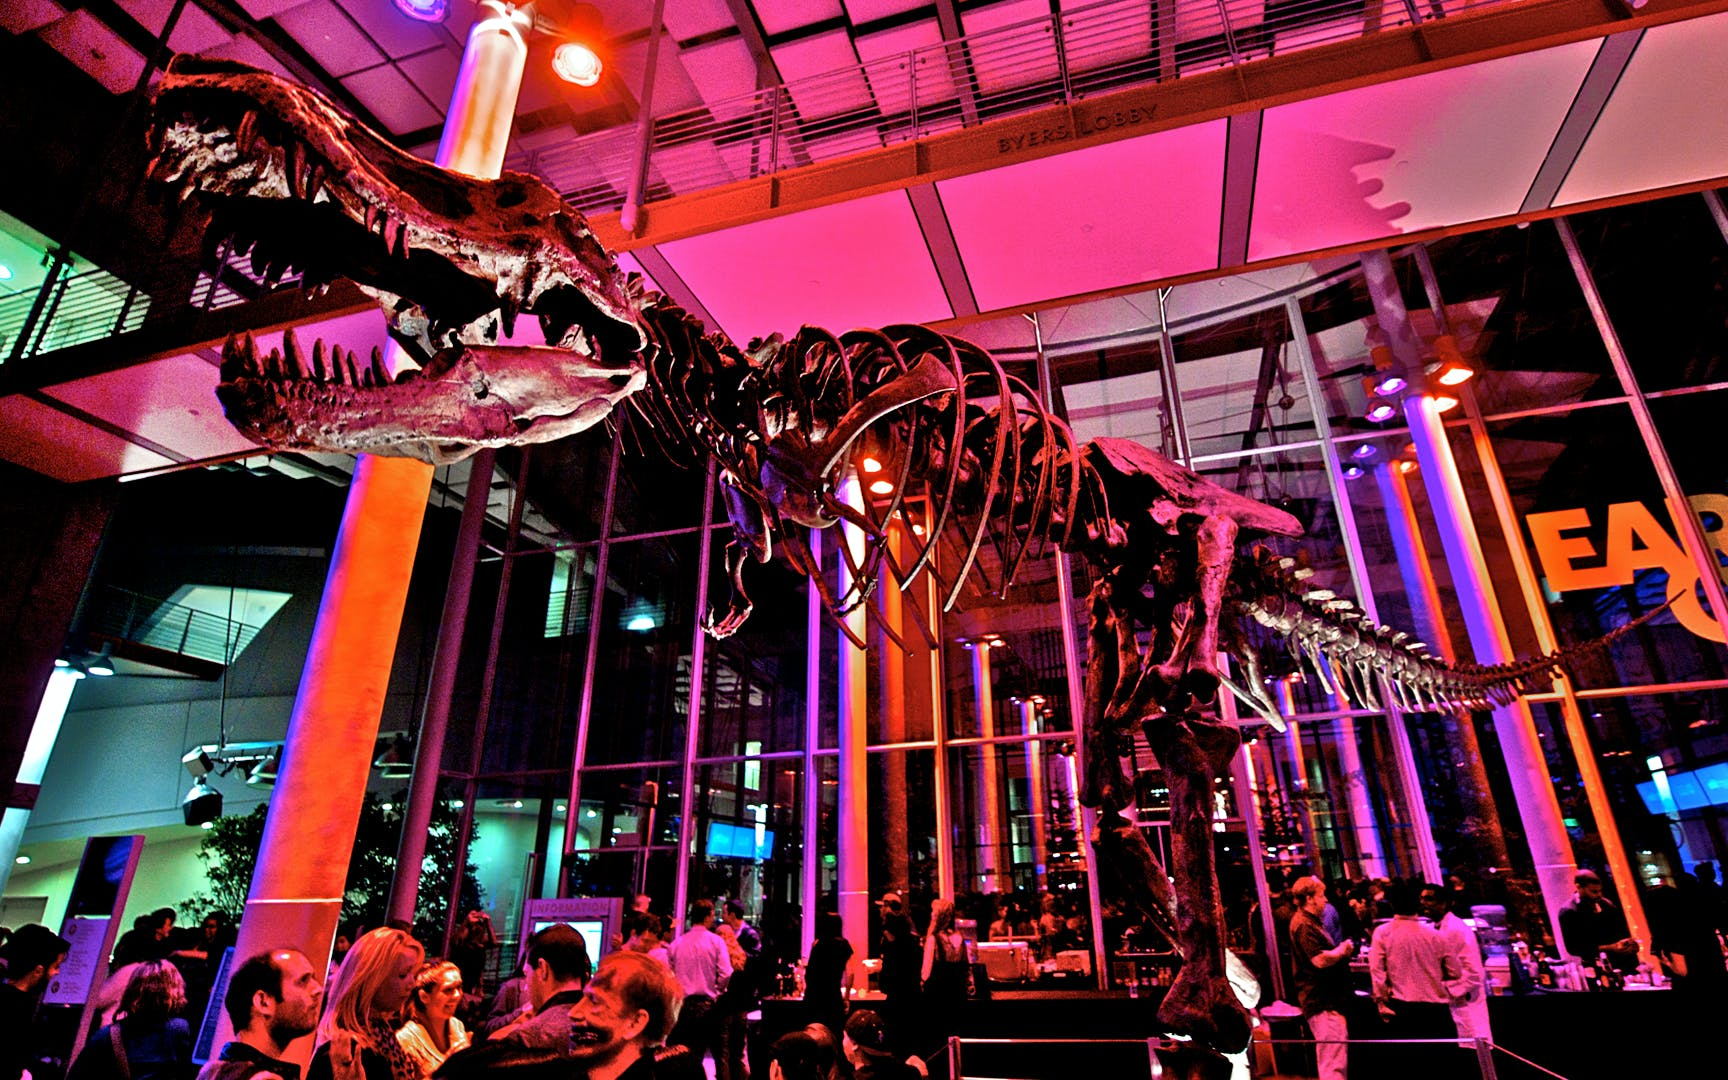 NightLife at California Academy of Sciences